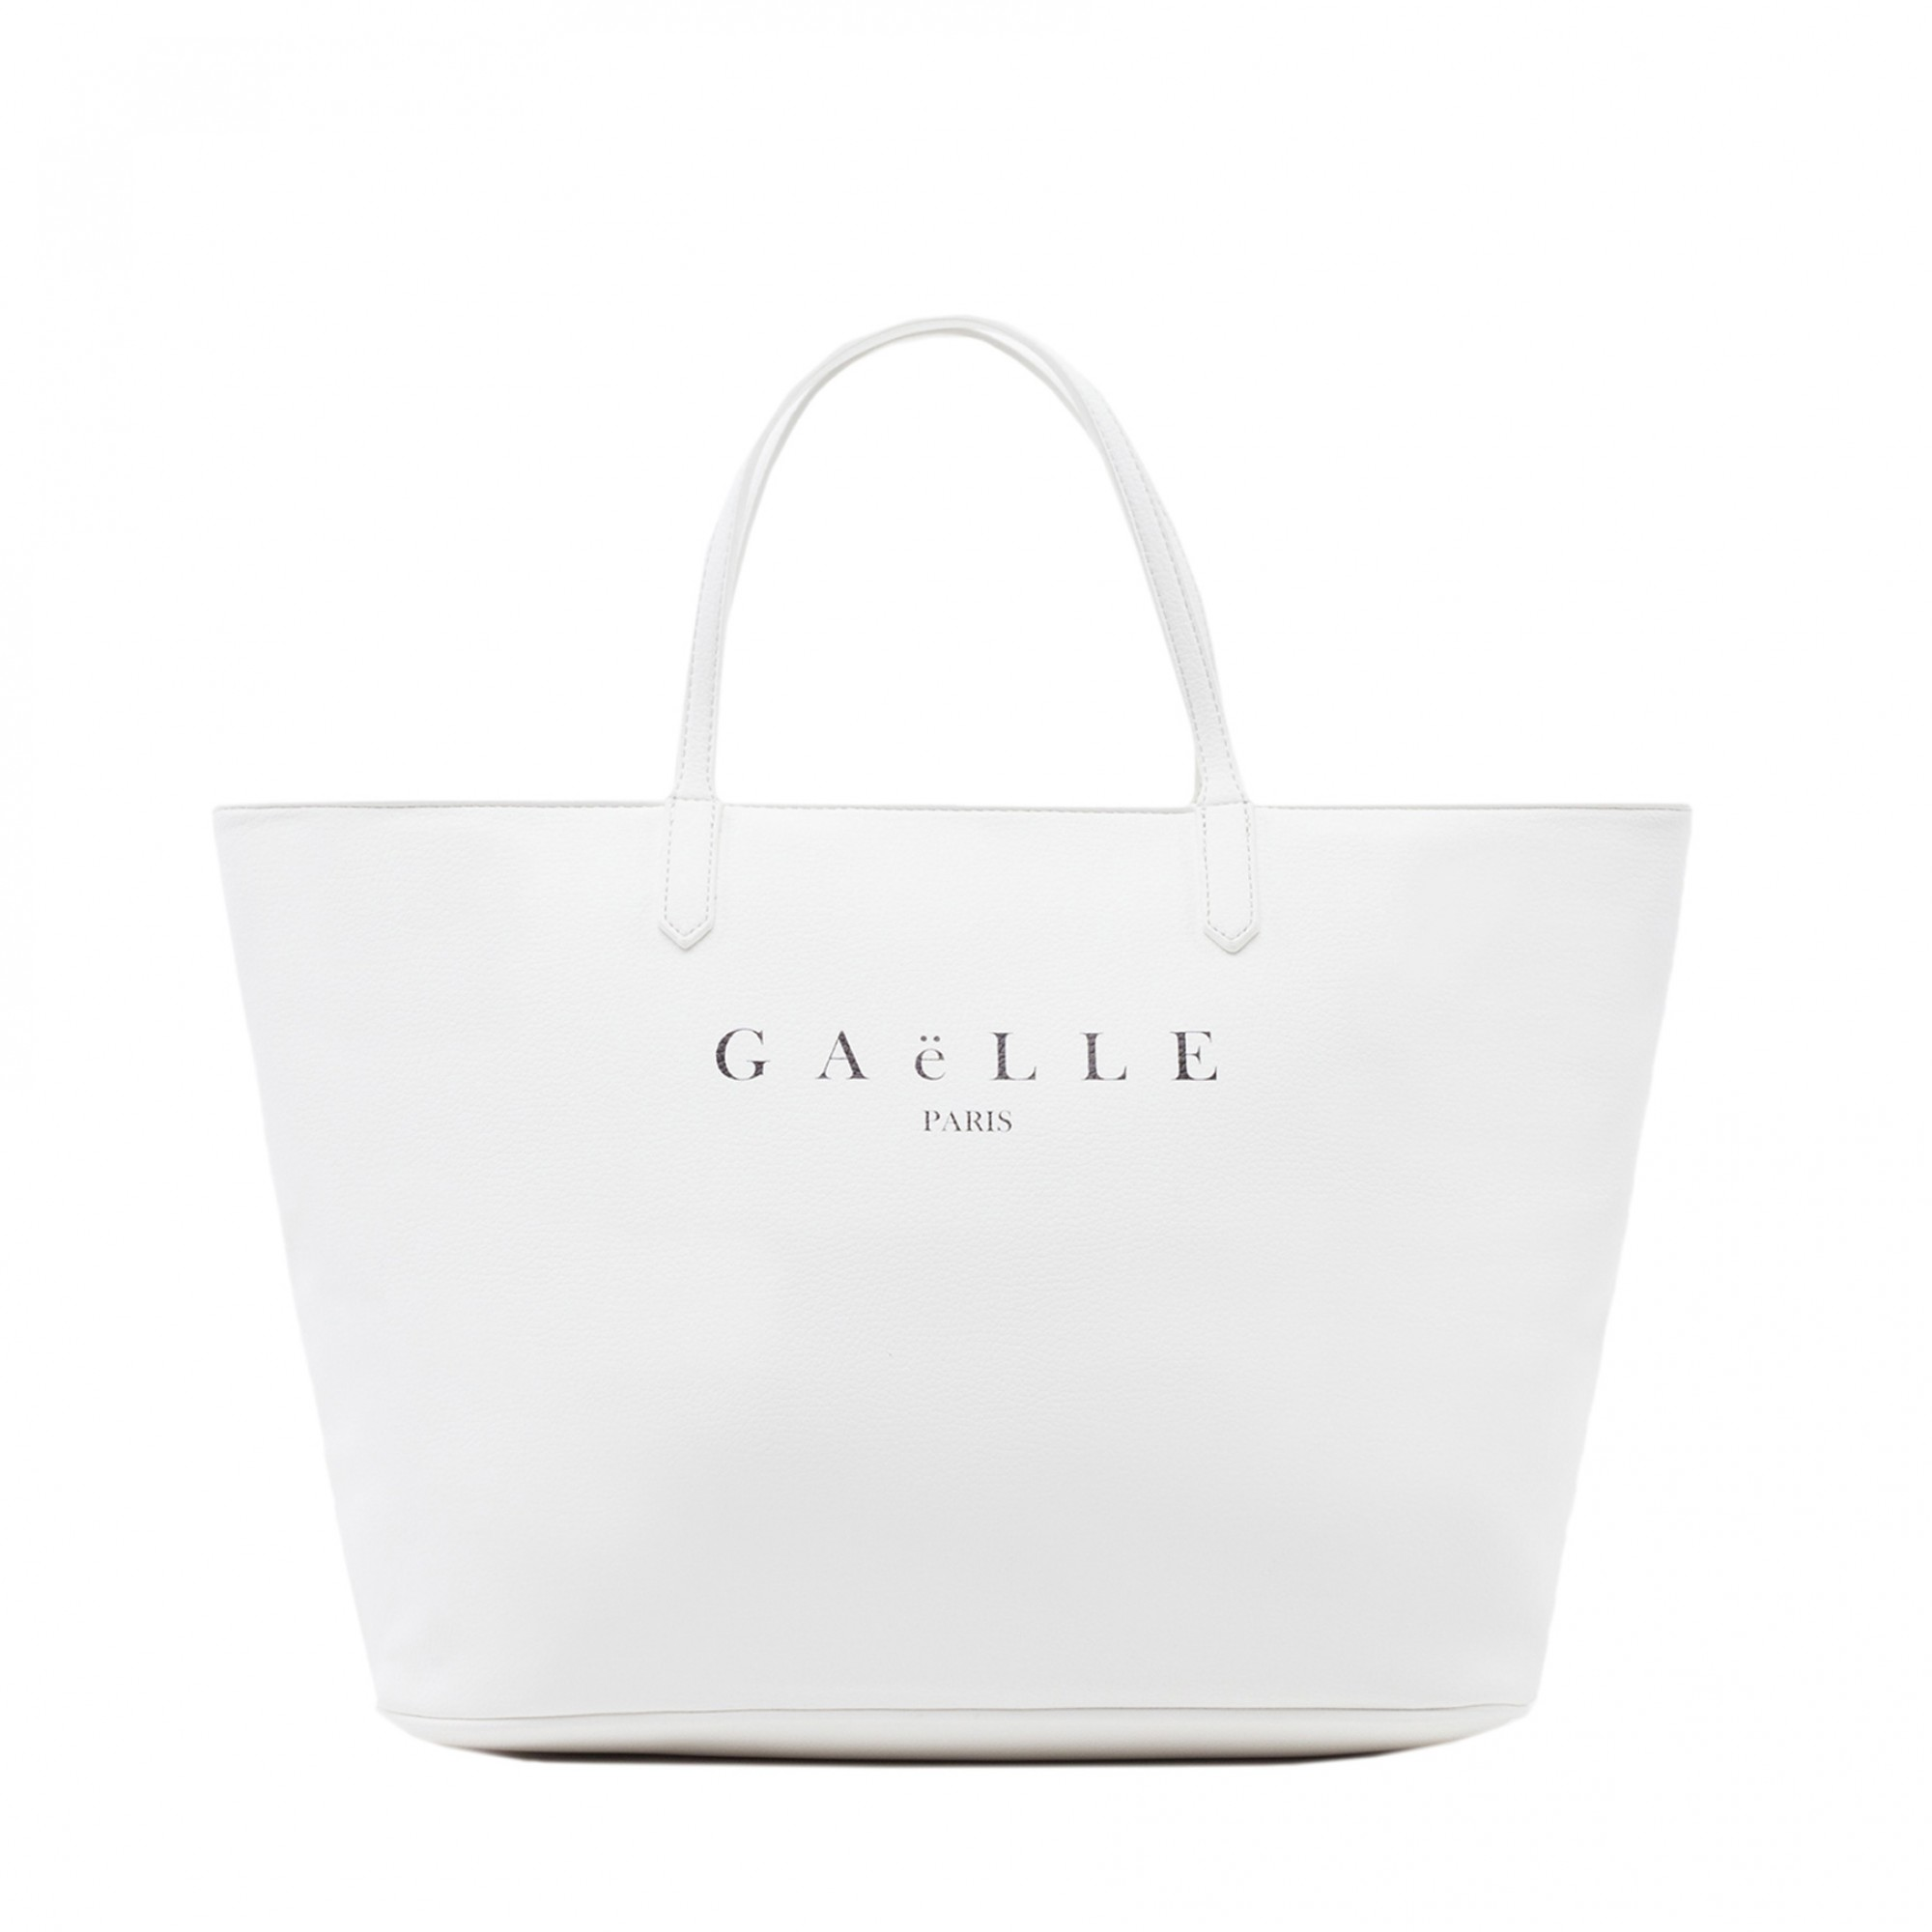 SHOPPING - GBDA703 - GAELLE PARIS